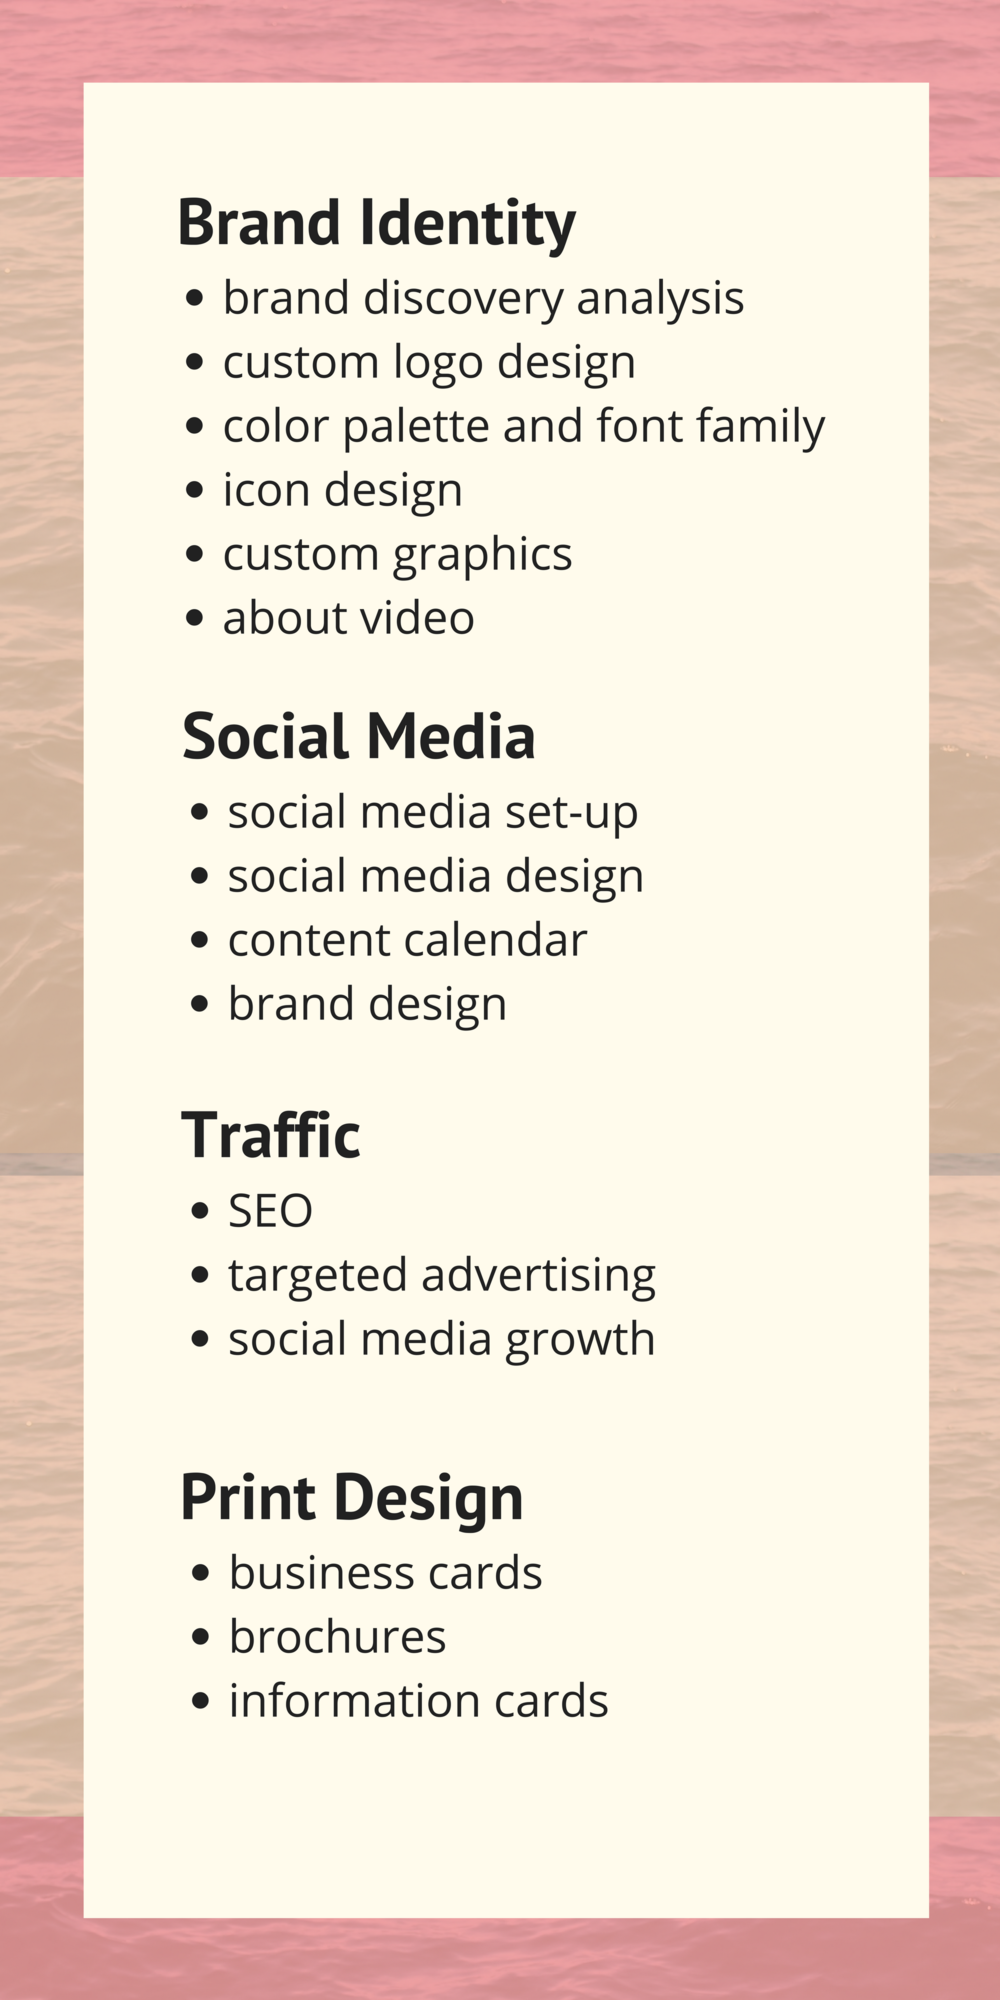 brand discovery analysis  custom logo design   color palette and font family   icon design  custom graphics  about video  social media set-up  social media design  content calendar   brand design  SEO   targeted advertising  social media growth  business cards  brochures  information cards